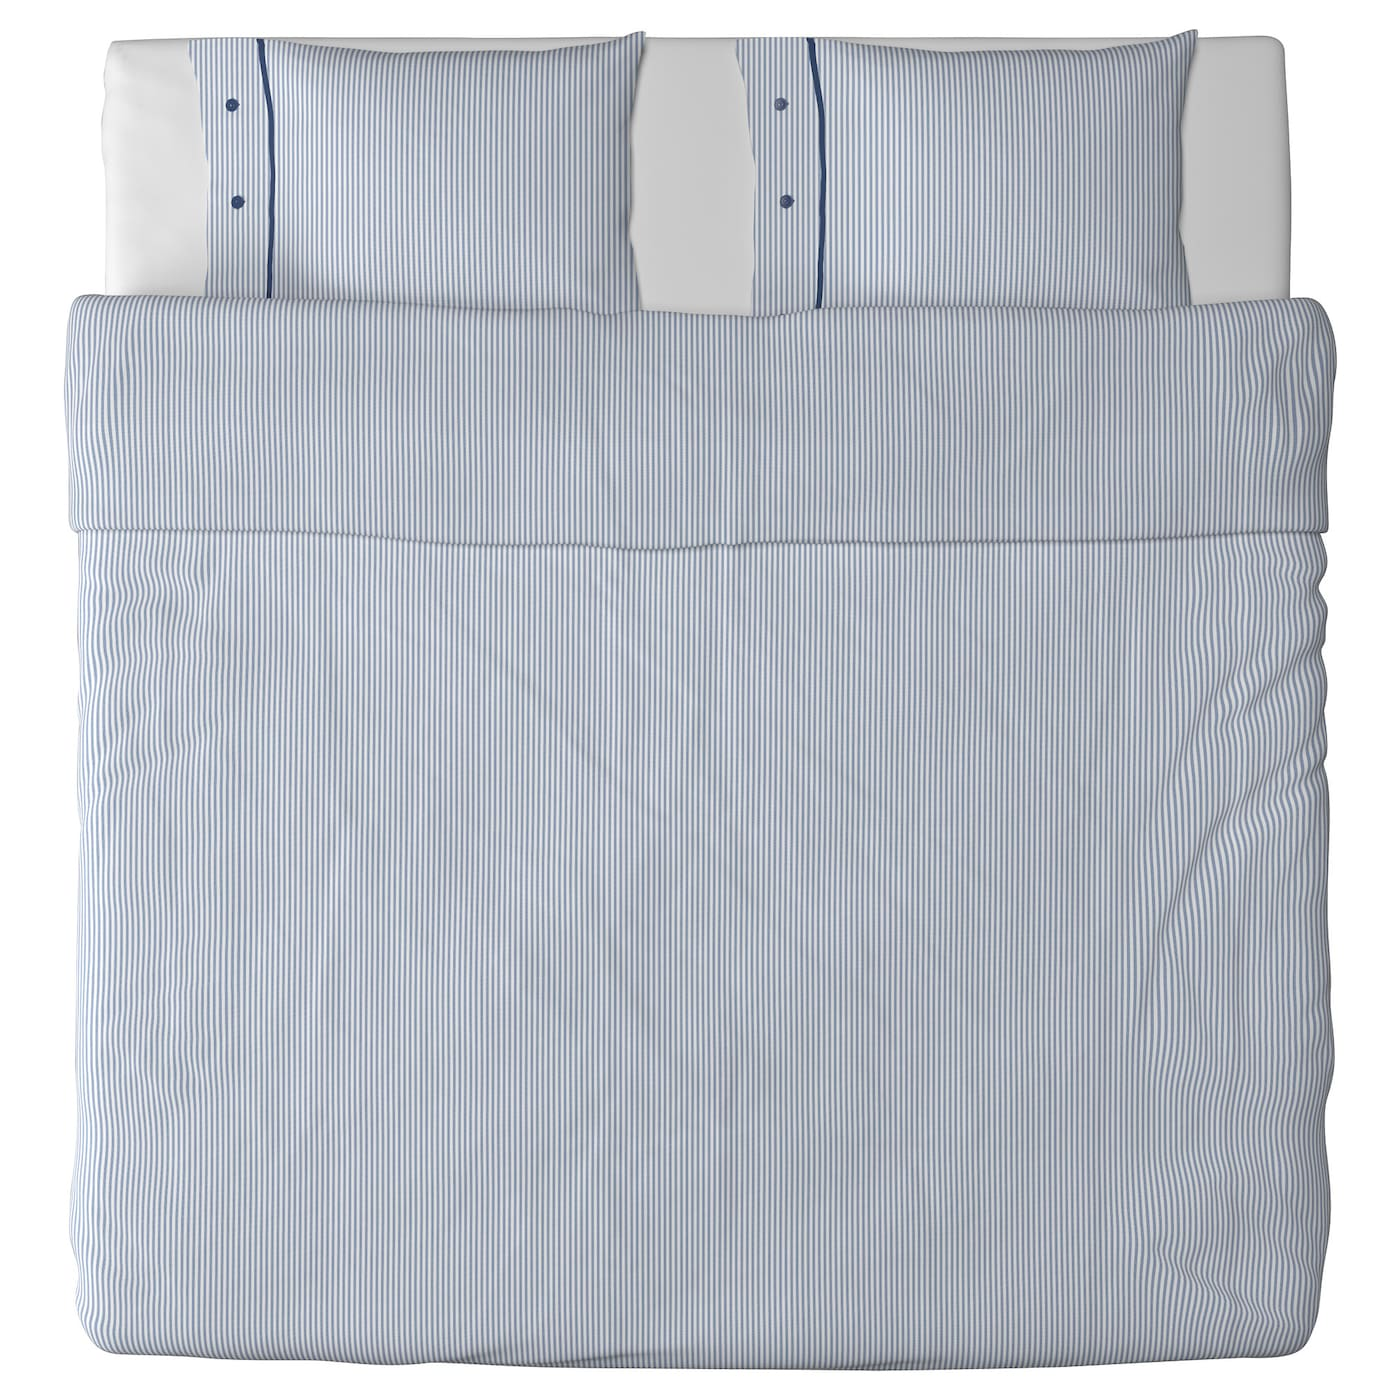 nyponros housse de couette et 2 taies blanc bleu 240x220 50x60 cm ikea. Black Bedroom Furniture Sets. Home Design Ideas